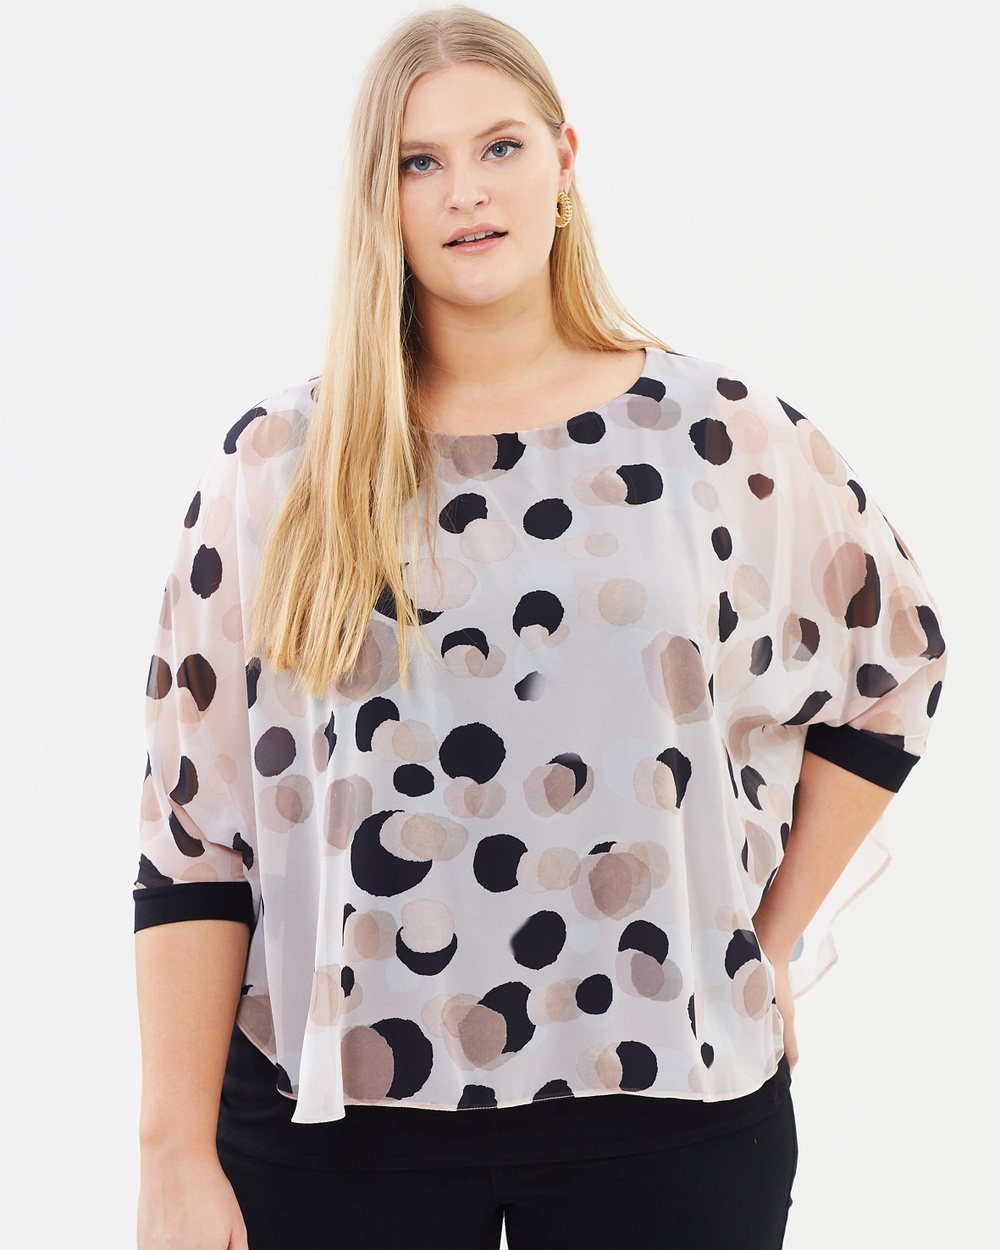 EVANS Nude Spot Bubble Top Tops Cream Nude Spot Bubble Top